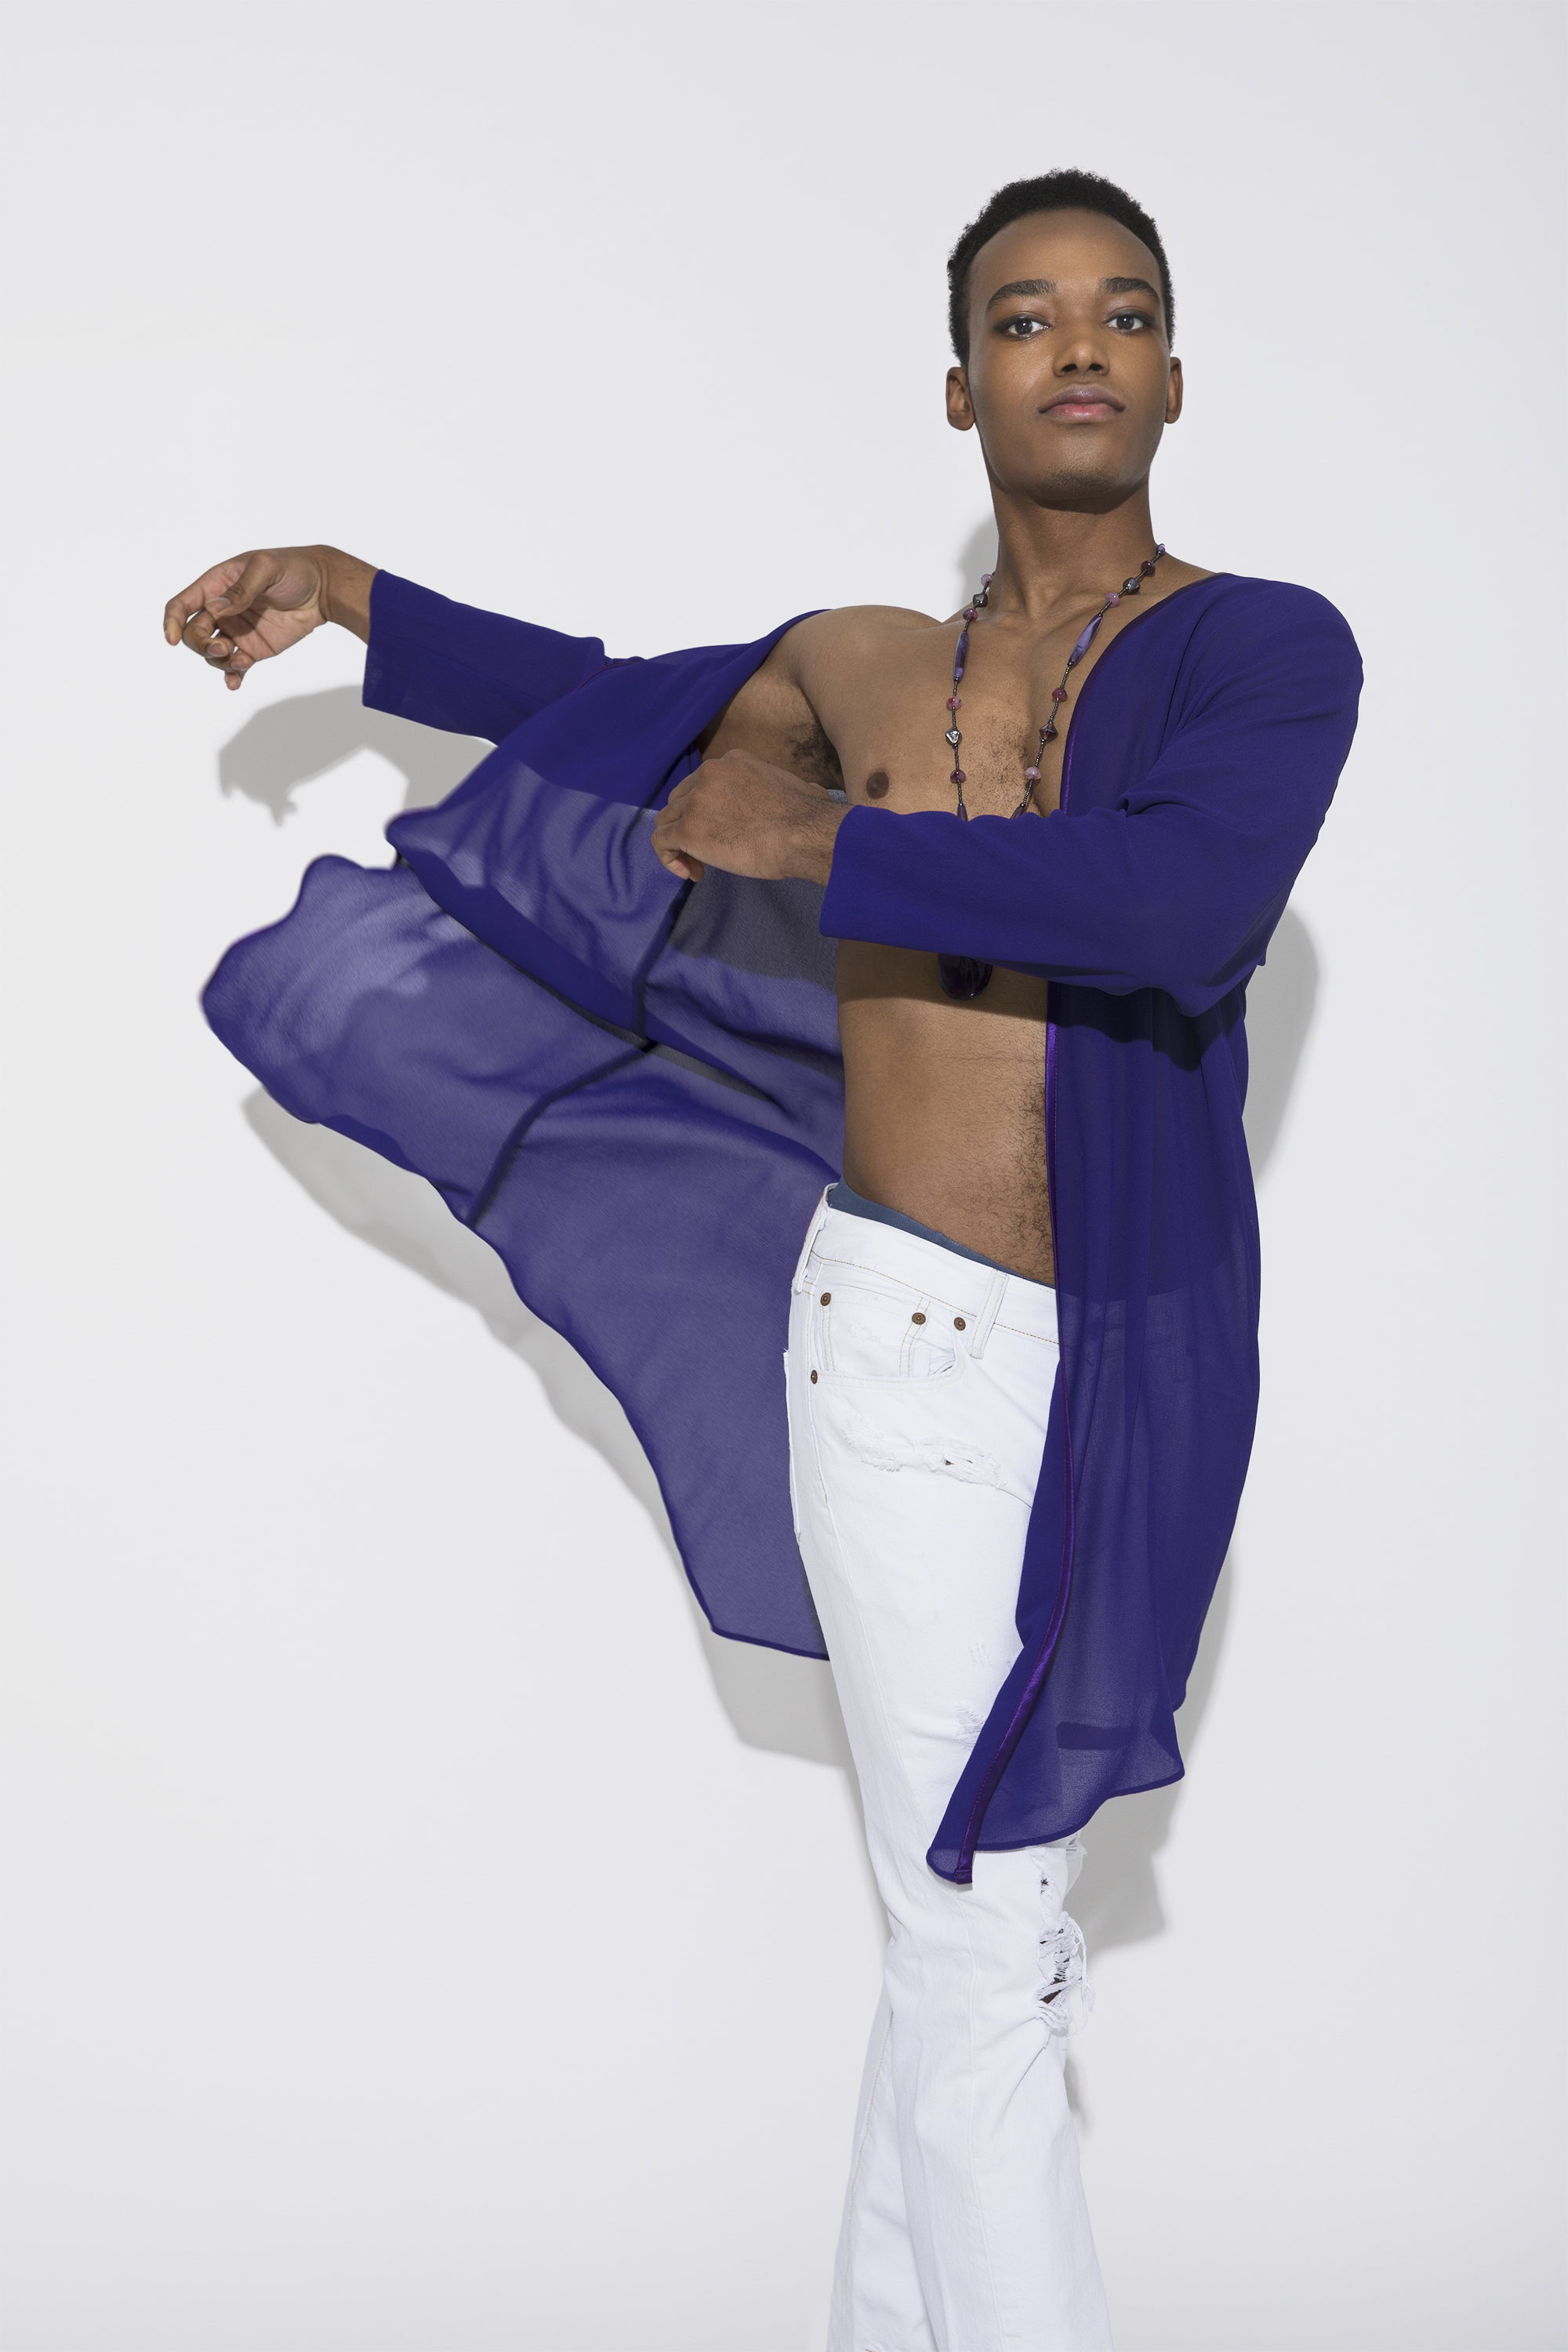 """While Prince's style played with the  ideas of gender, sexuality and their intersectionality with race  throughout his career, it was not unti 1984, when """"Purple Rain"""" was released that the artist became identified with the rich color, signifying royalty and mysticism."""